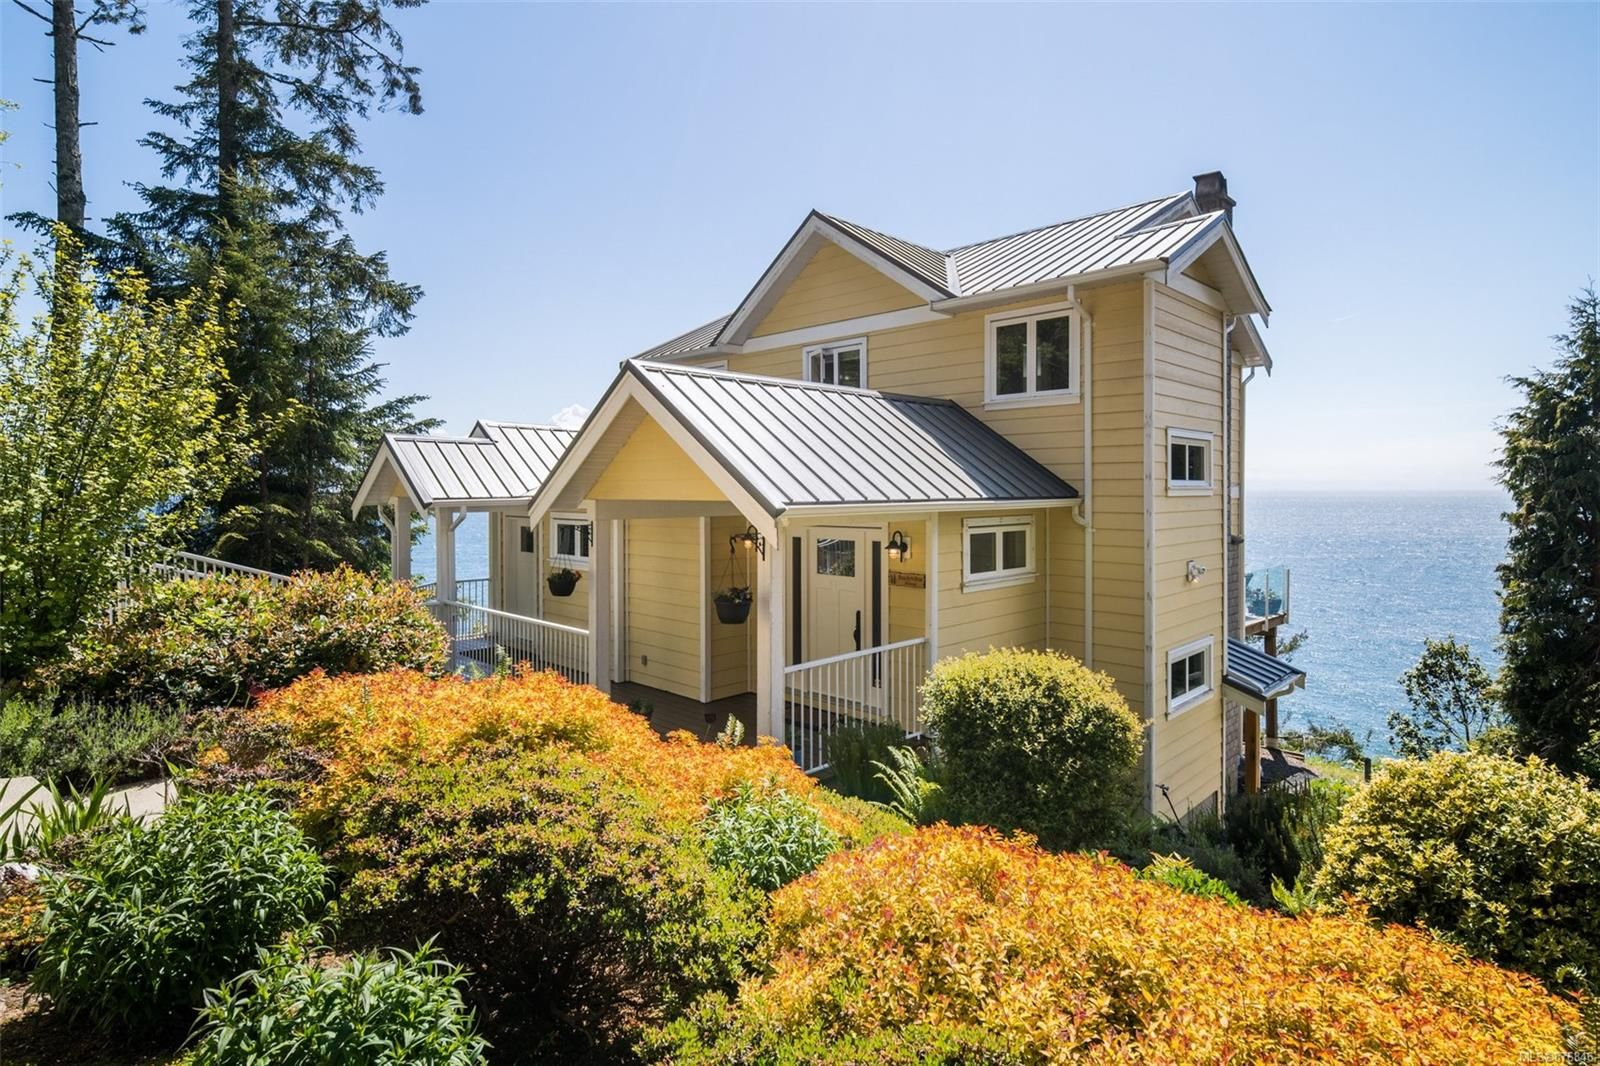 Main Photo: 2576 Seaside Dr in : Sk French Beach House for sale (Sooke)  : MLS®# 876846